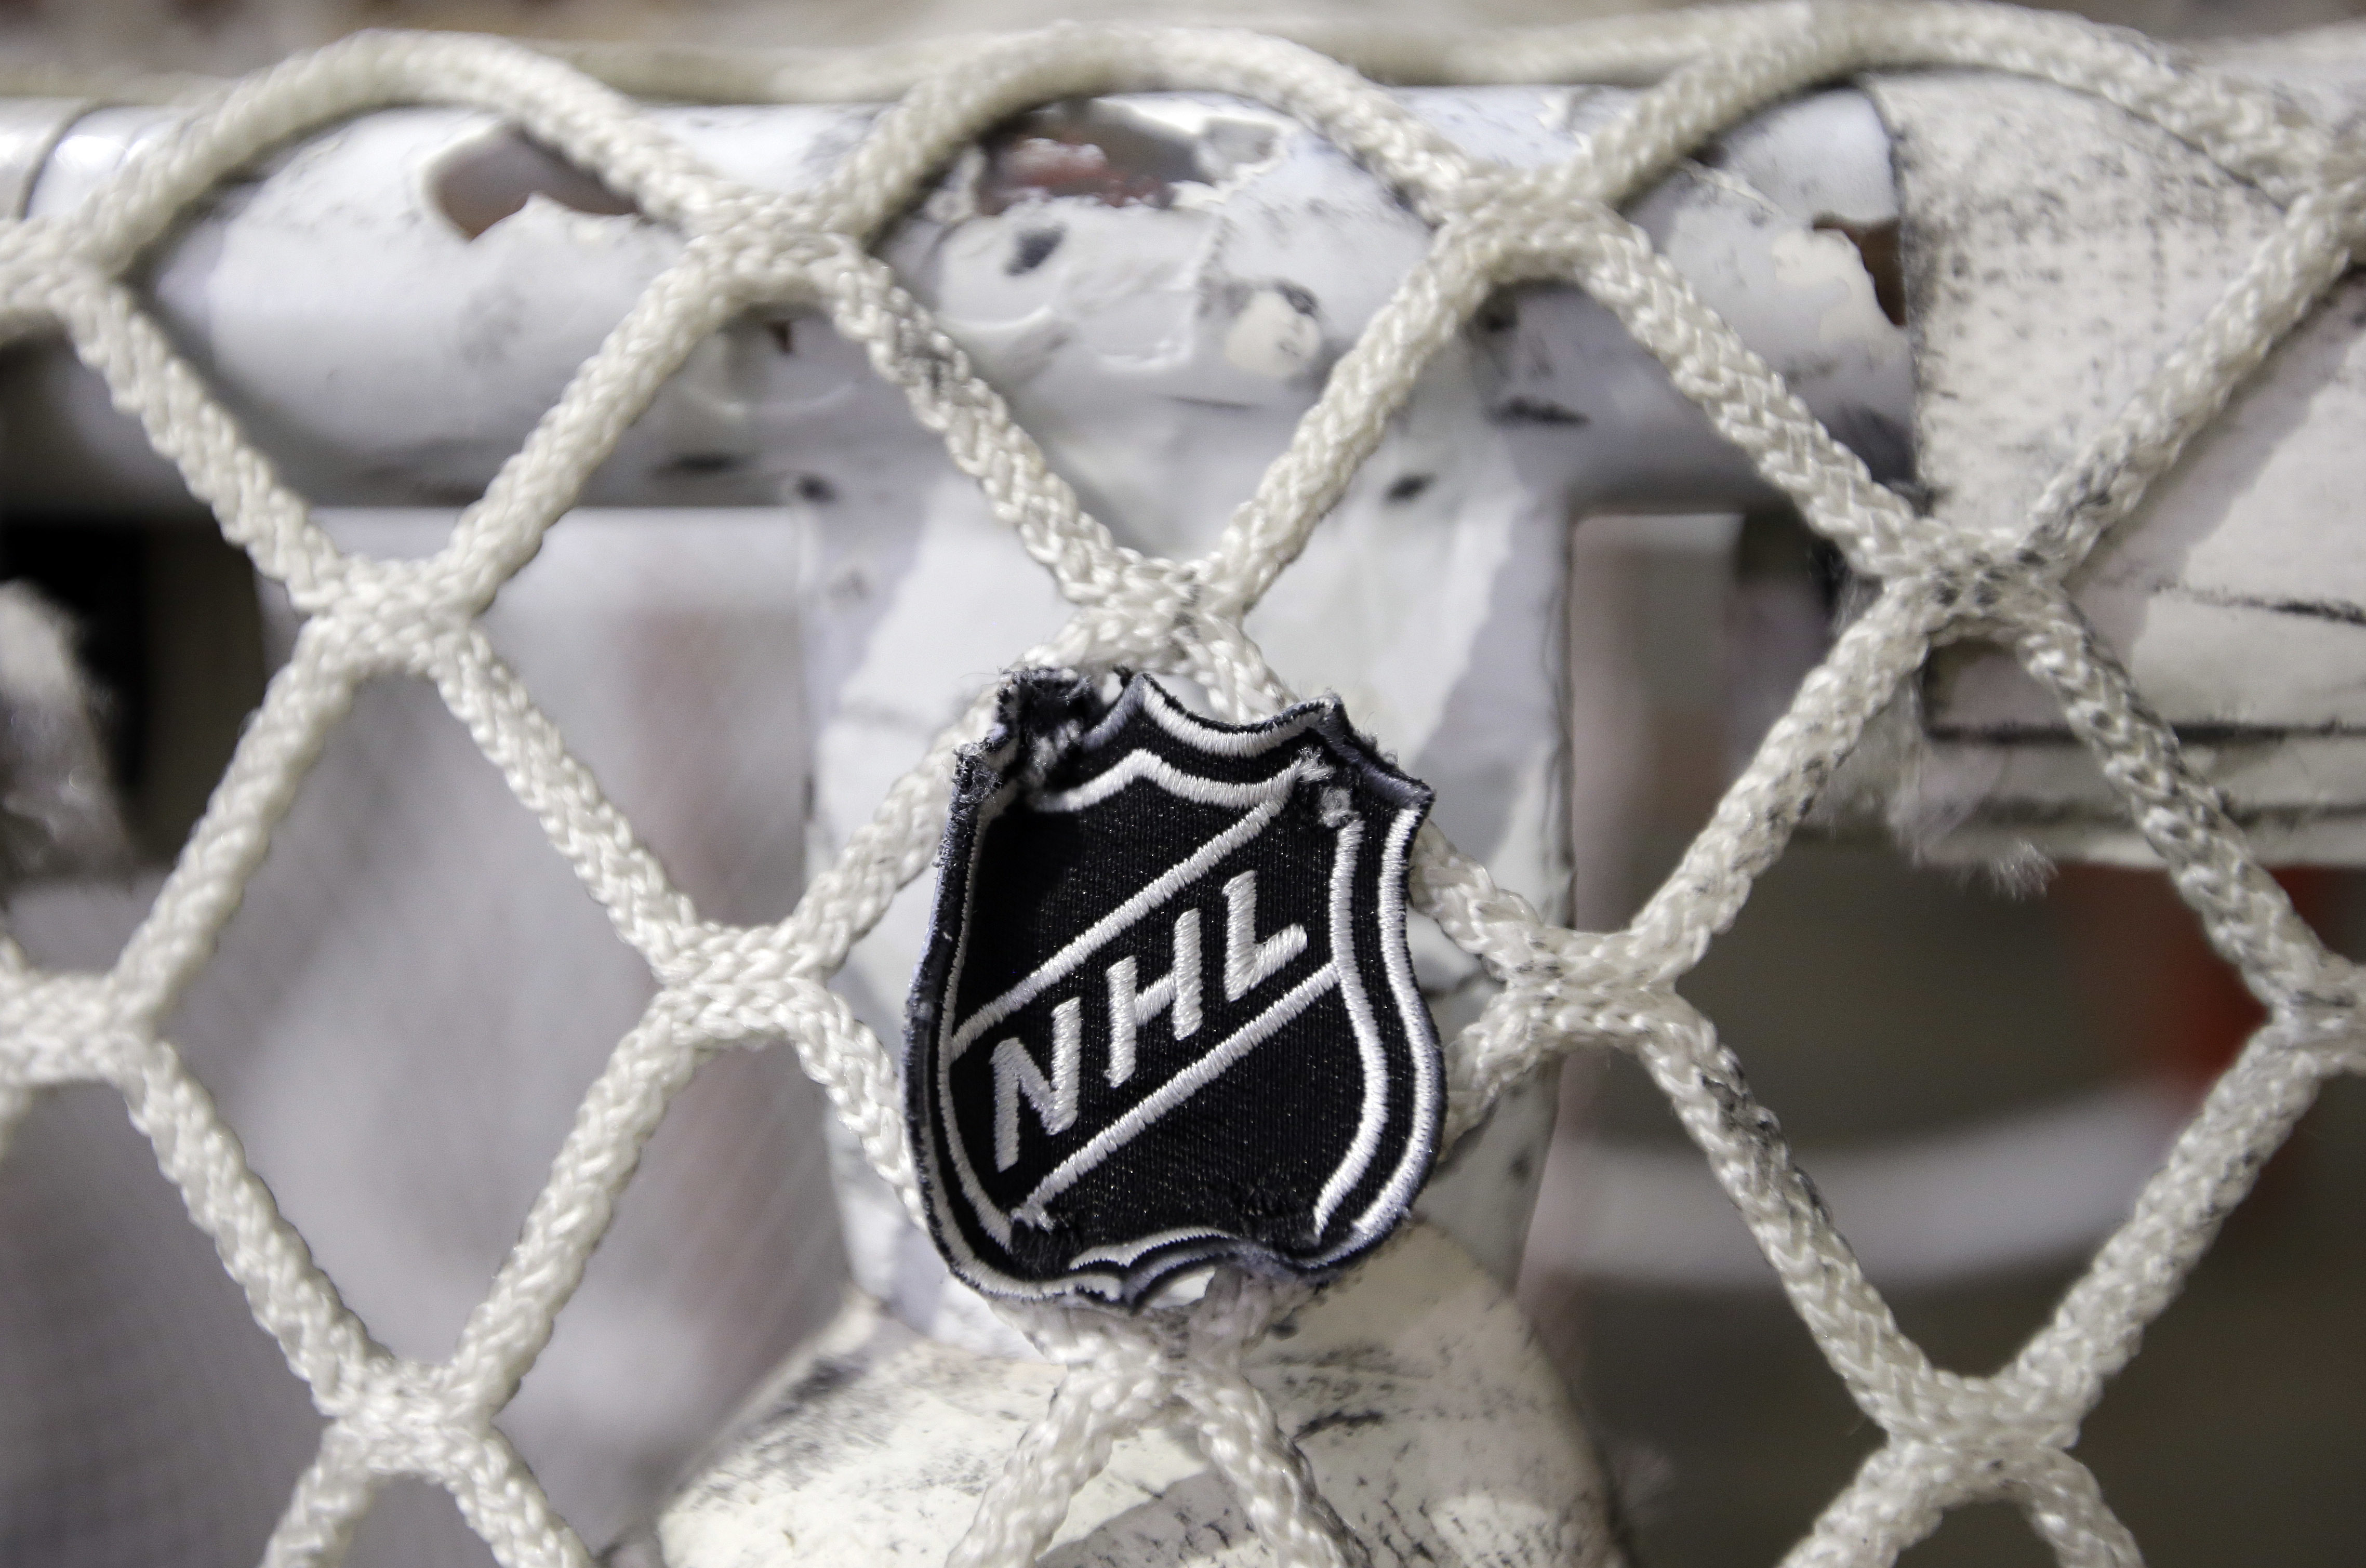 The NHL and the players' union is considering a 24-team playoff format if the sport is able to resume play.